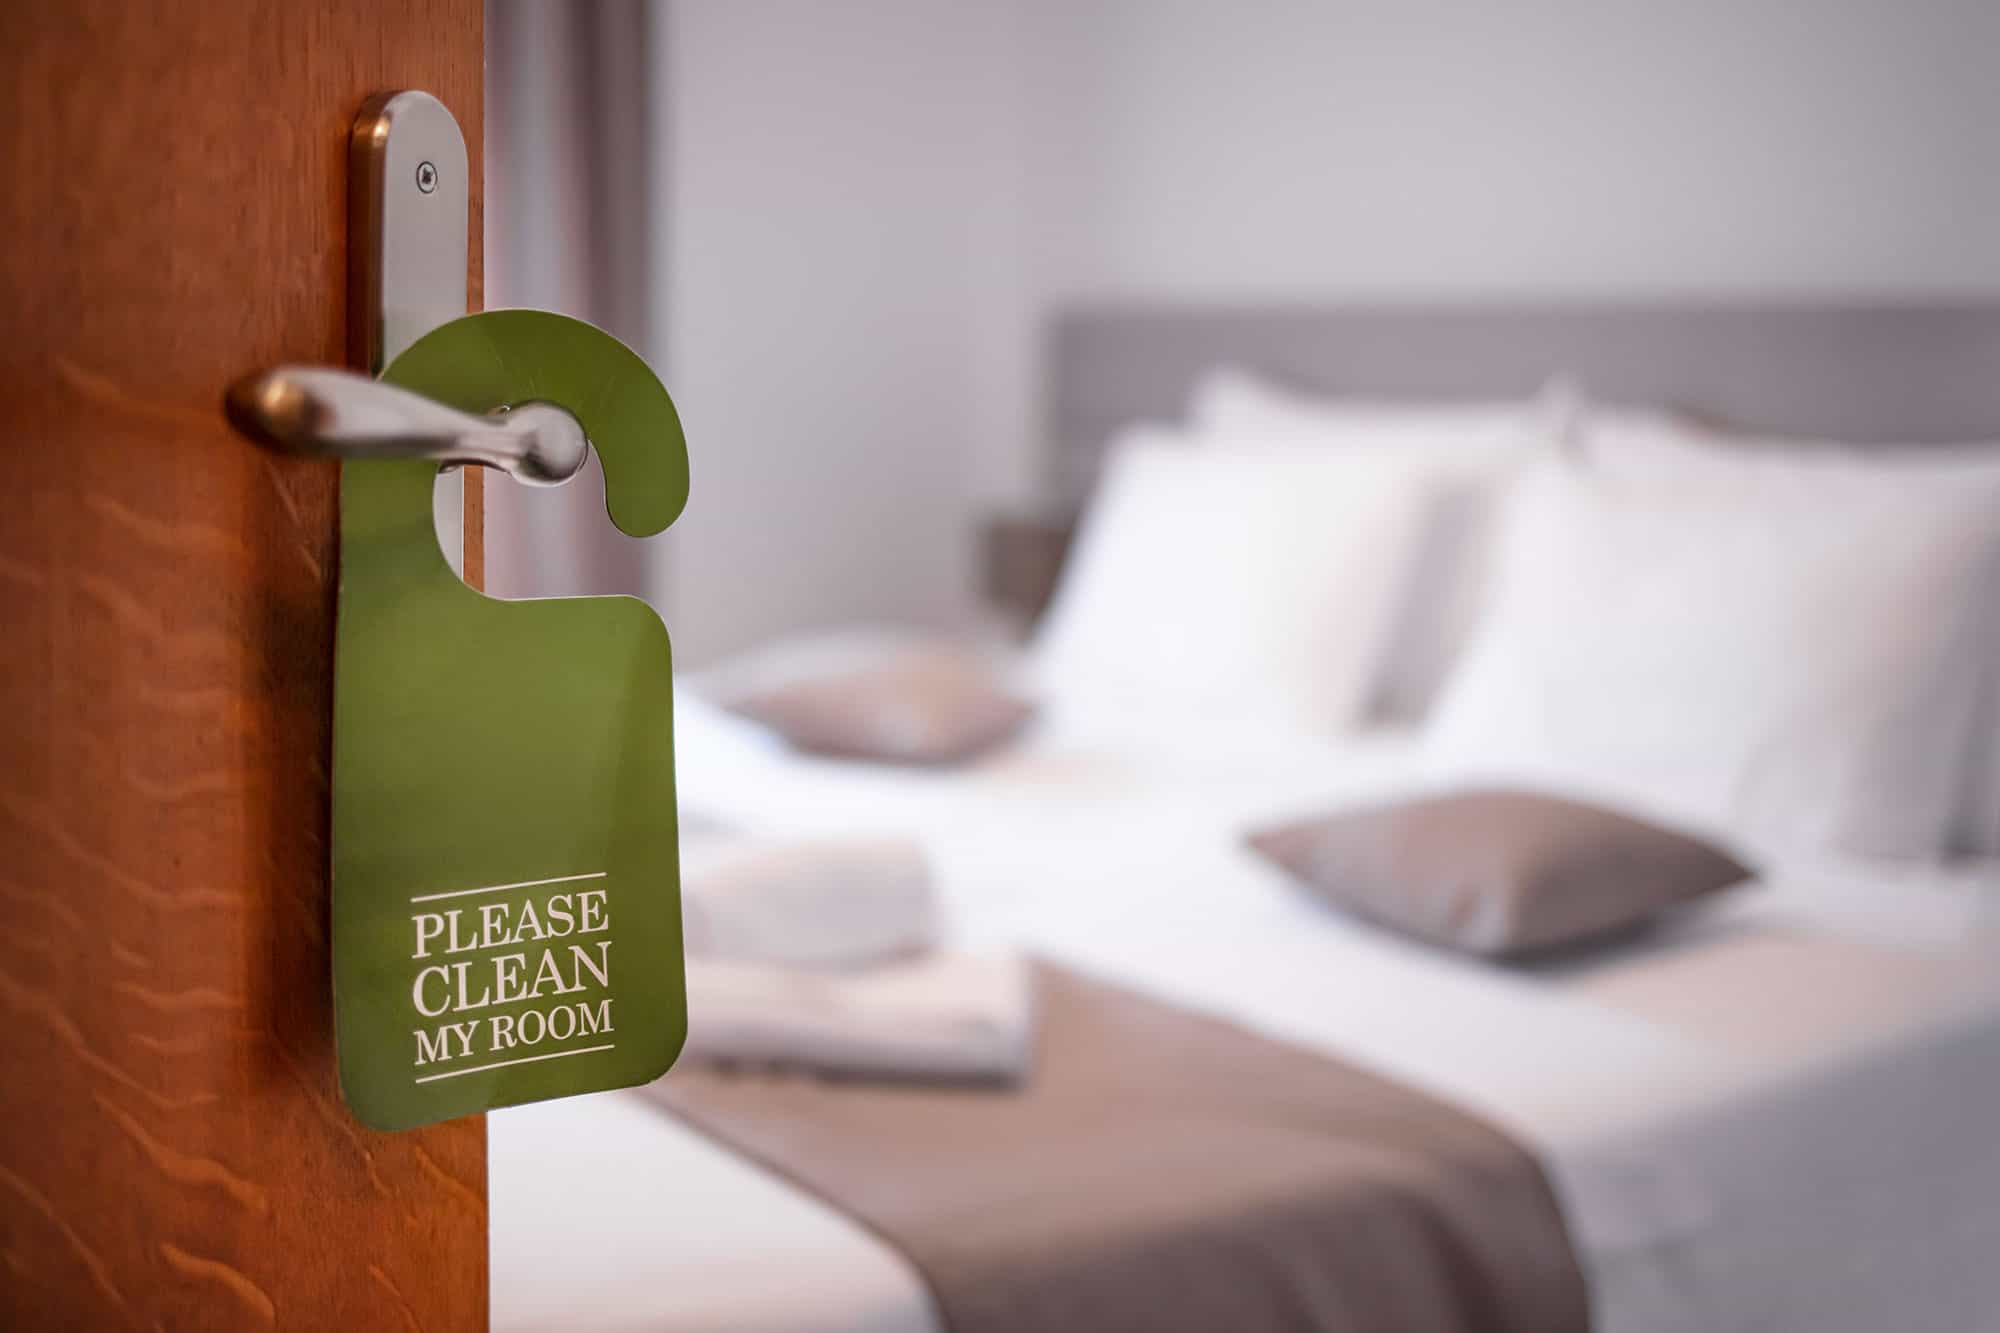 planning around hotel service quality issues, image of room clean tag on open door in hotel